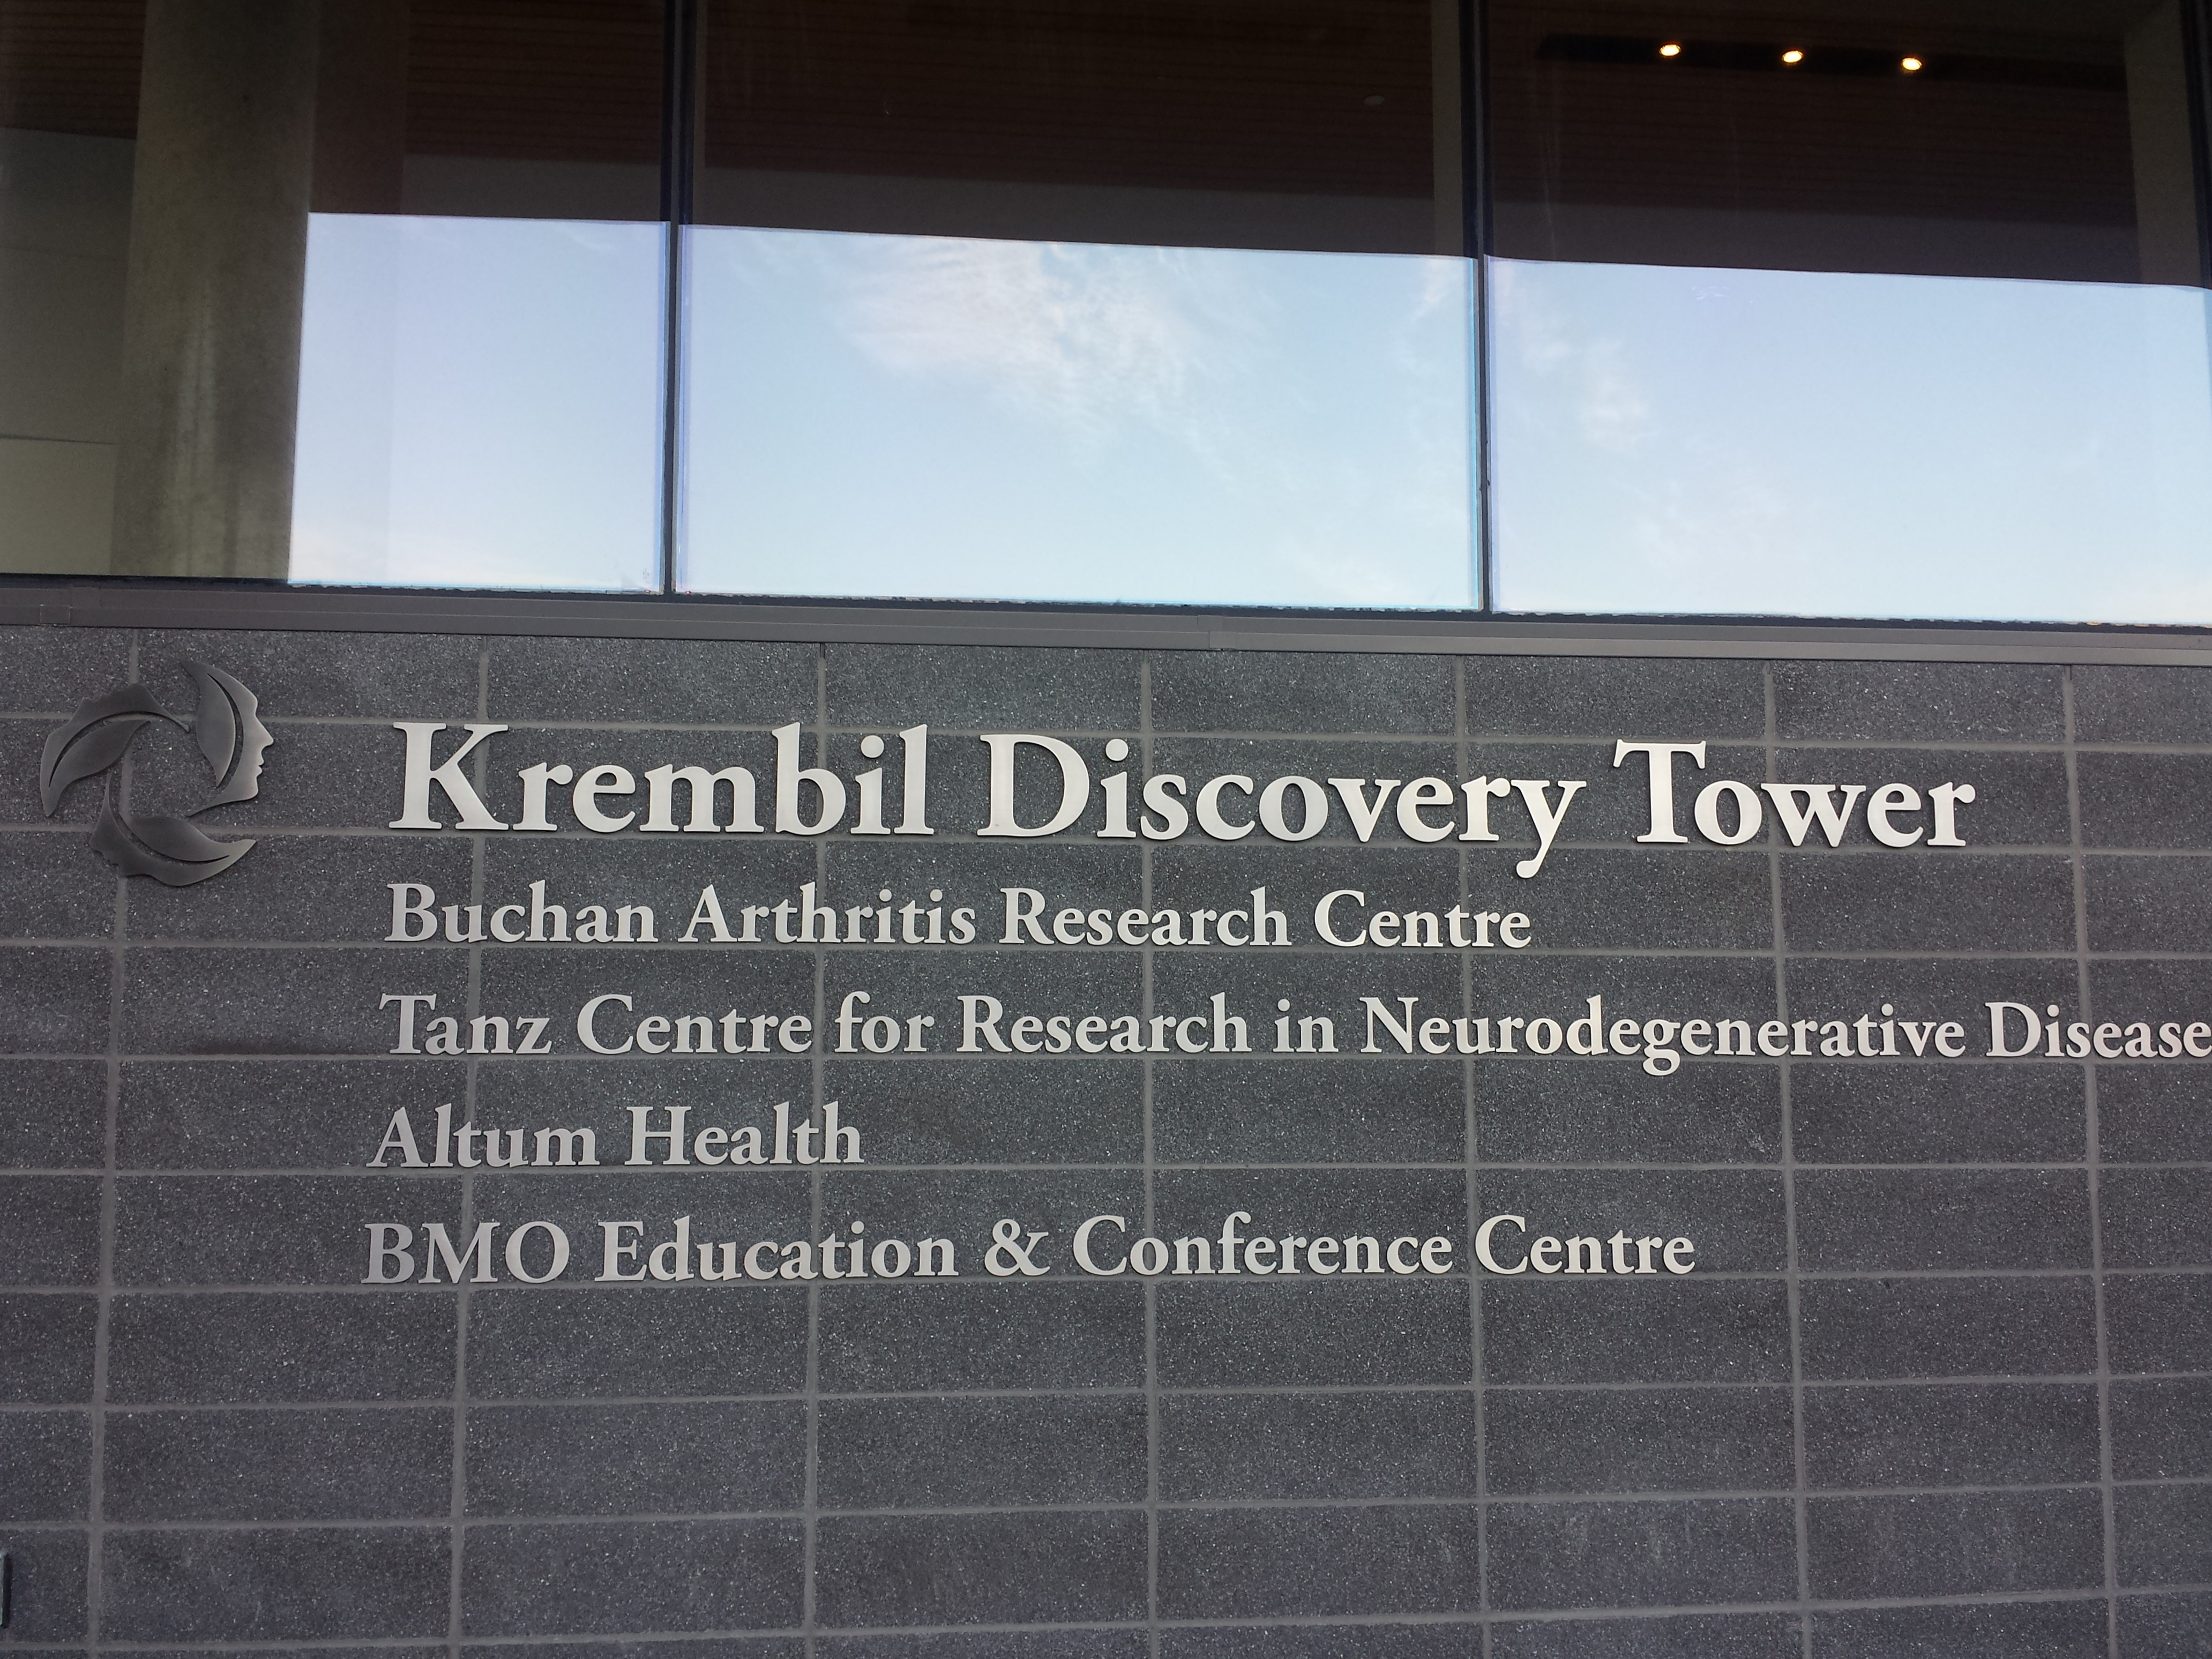 The sign in front of the Krembil Discovery Tower including the different research centres inside.